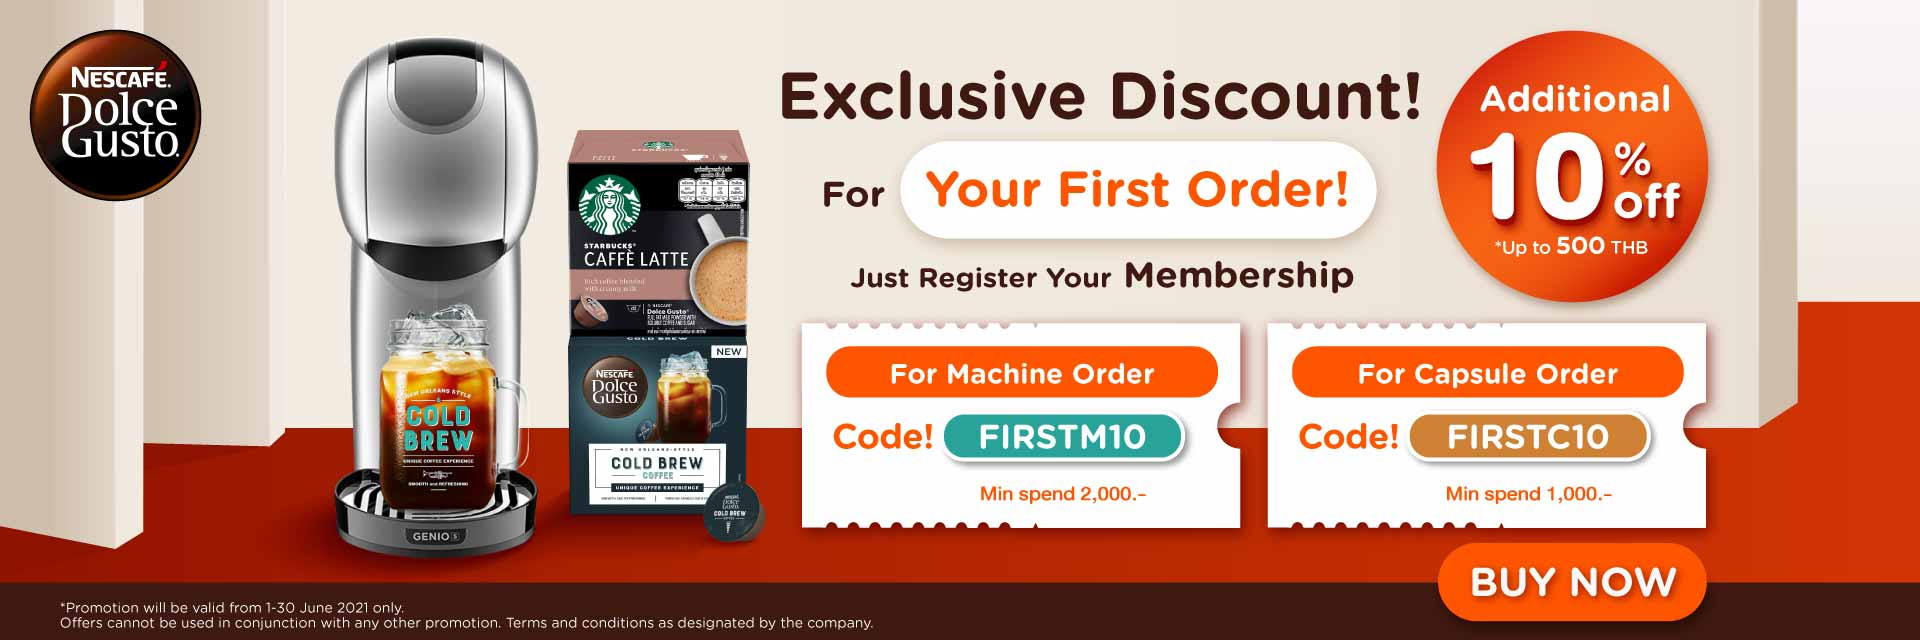 Discount for First-time purchase